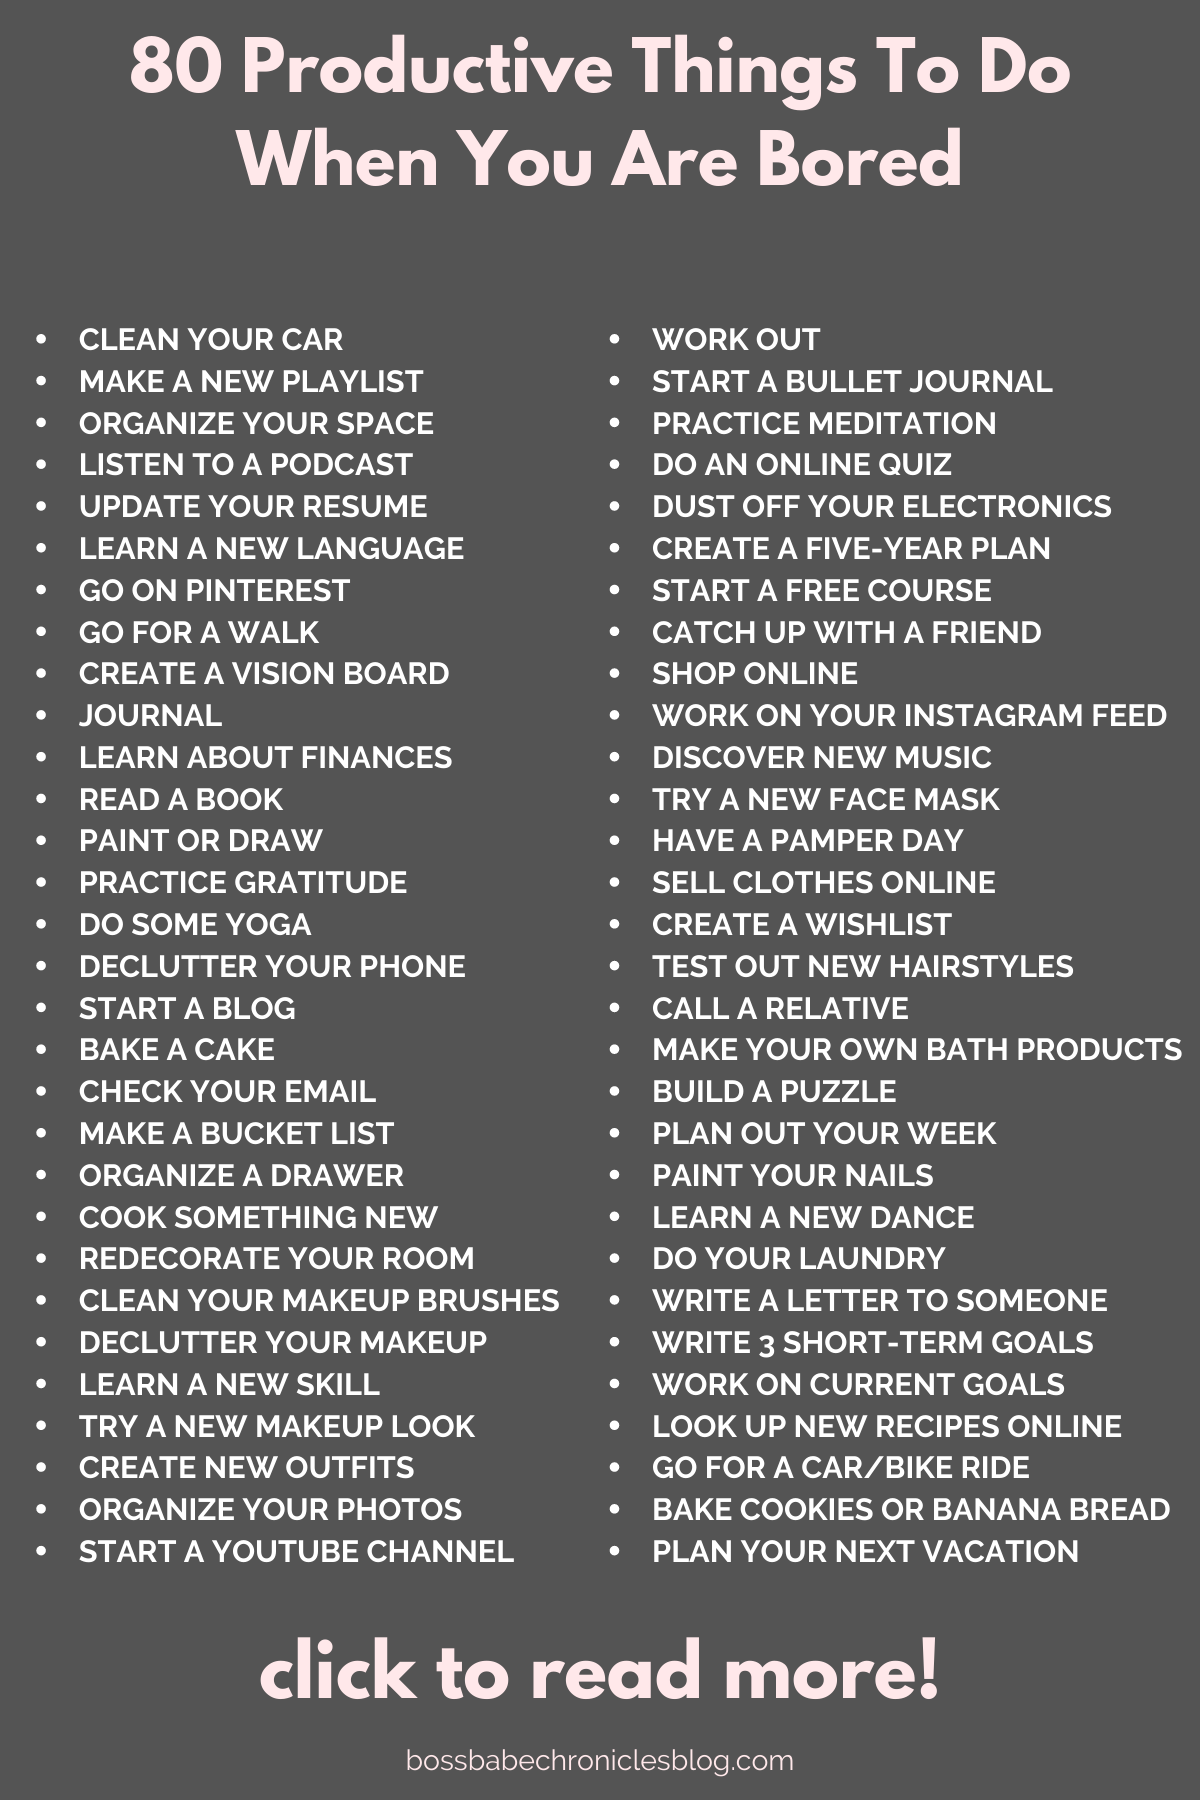 If you are feeling bored but don't want to watch Netflix, here are 80 productive things you can do to get rid of the boredom AND get stuff done! Click for more! Productivity hacks, how to be productive, how to stay busy, staying busy in the house, what to do at home, things to do when you are bored, things to do around the house. #productivity #howtobeproductive #personaldevelopment #stayingactive #beingproductive